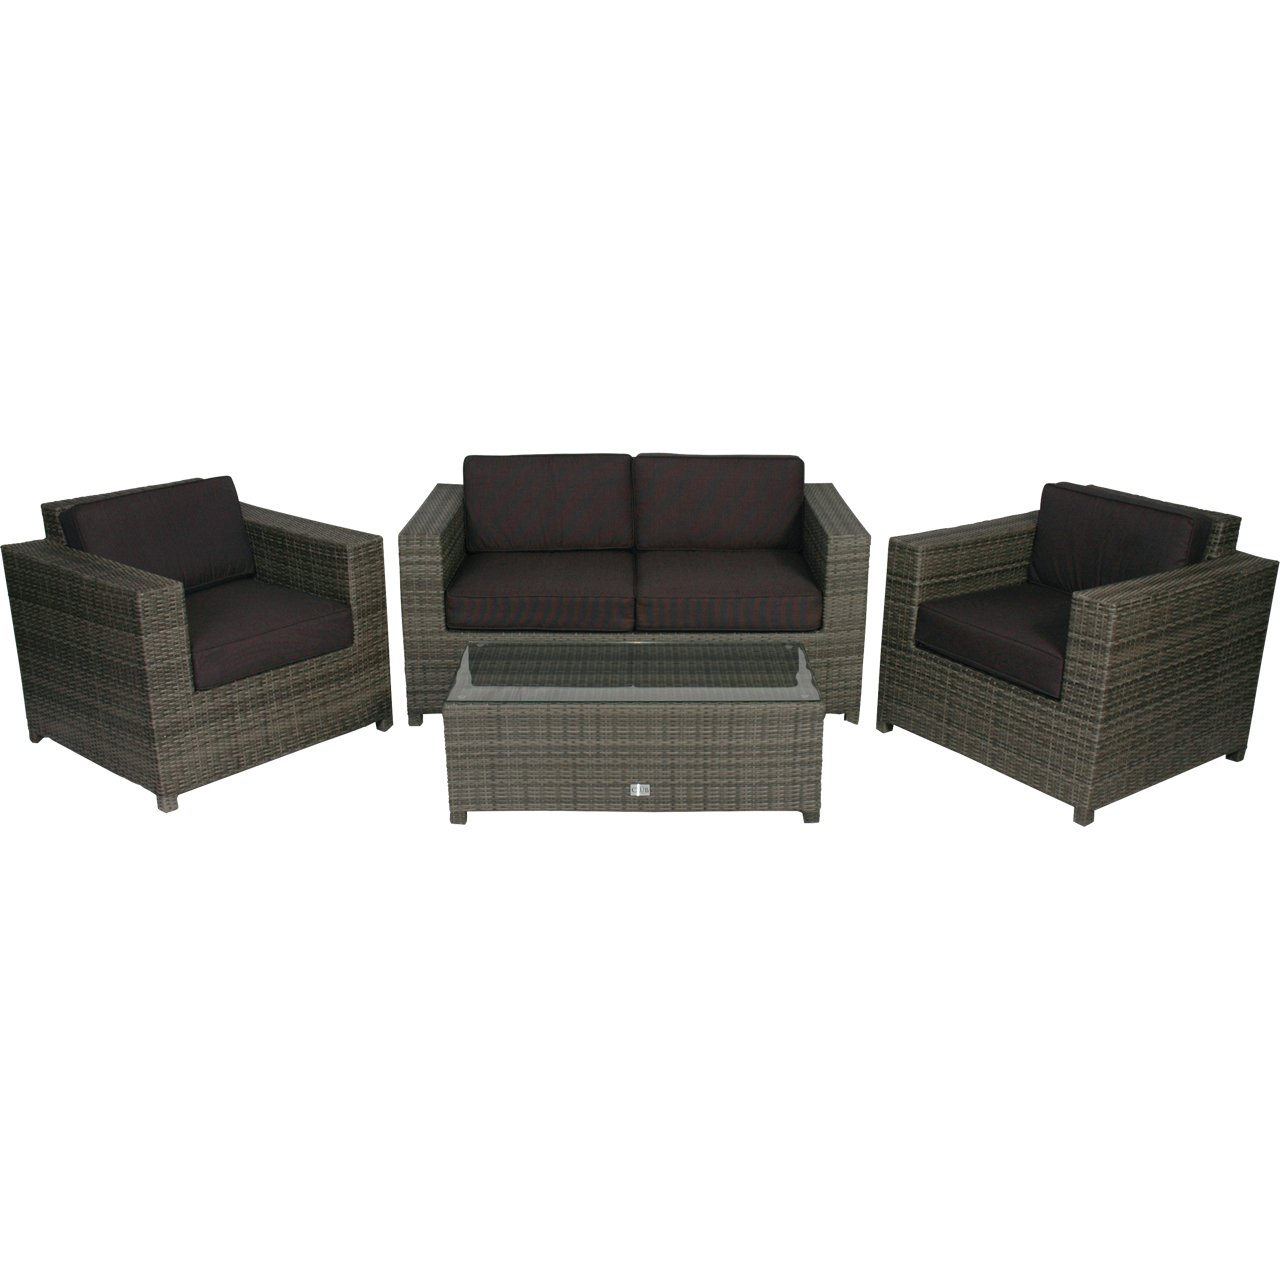 poly rattan lounge set 4tlg grau gartenm bel tisch. Black Bedroom Furniture Sets. Home Design Ideas